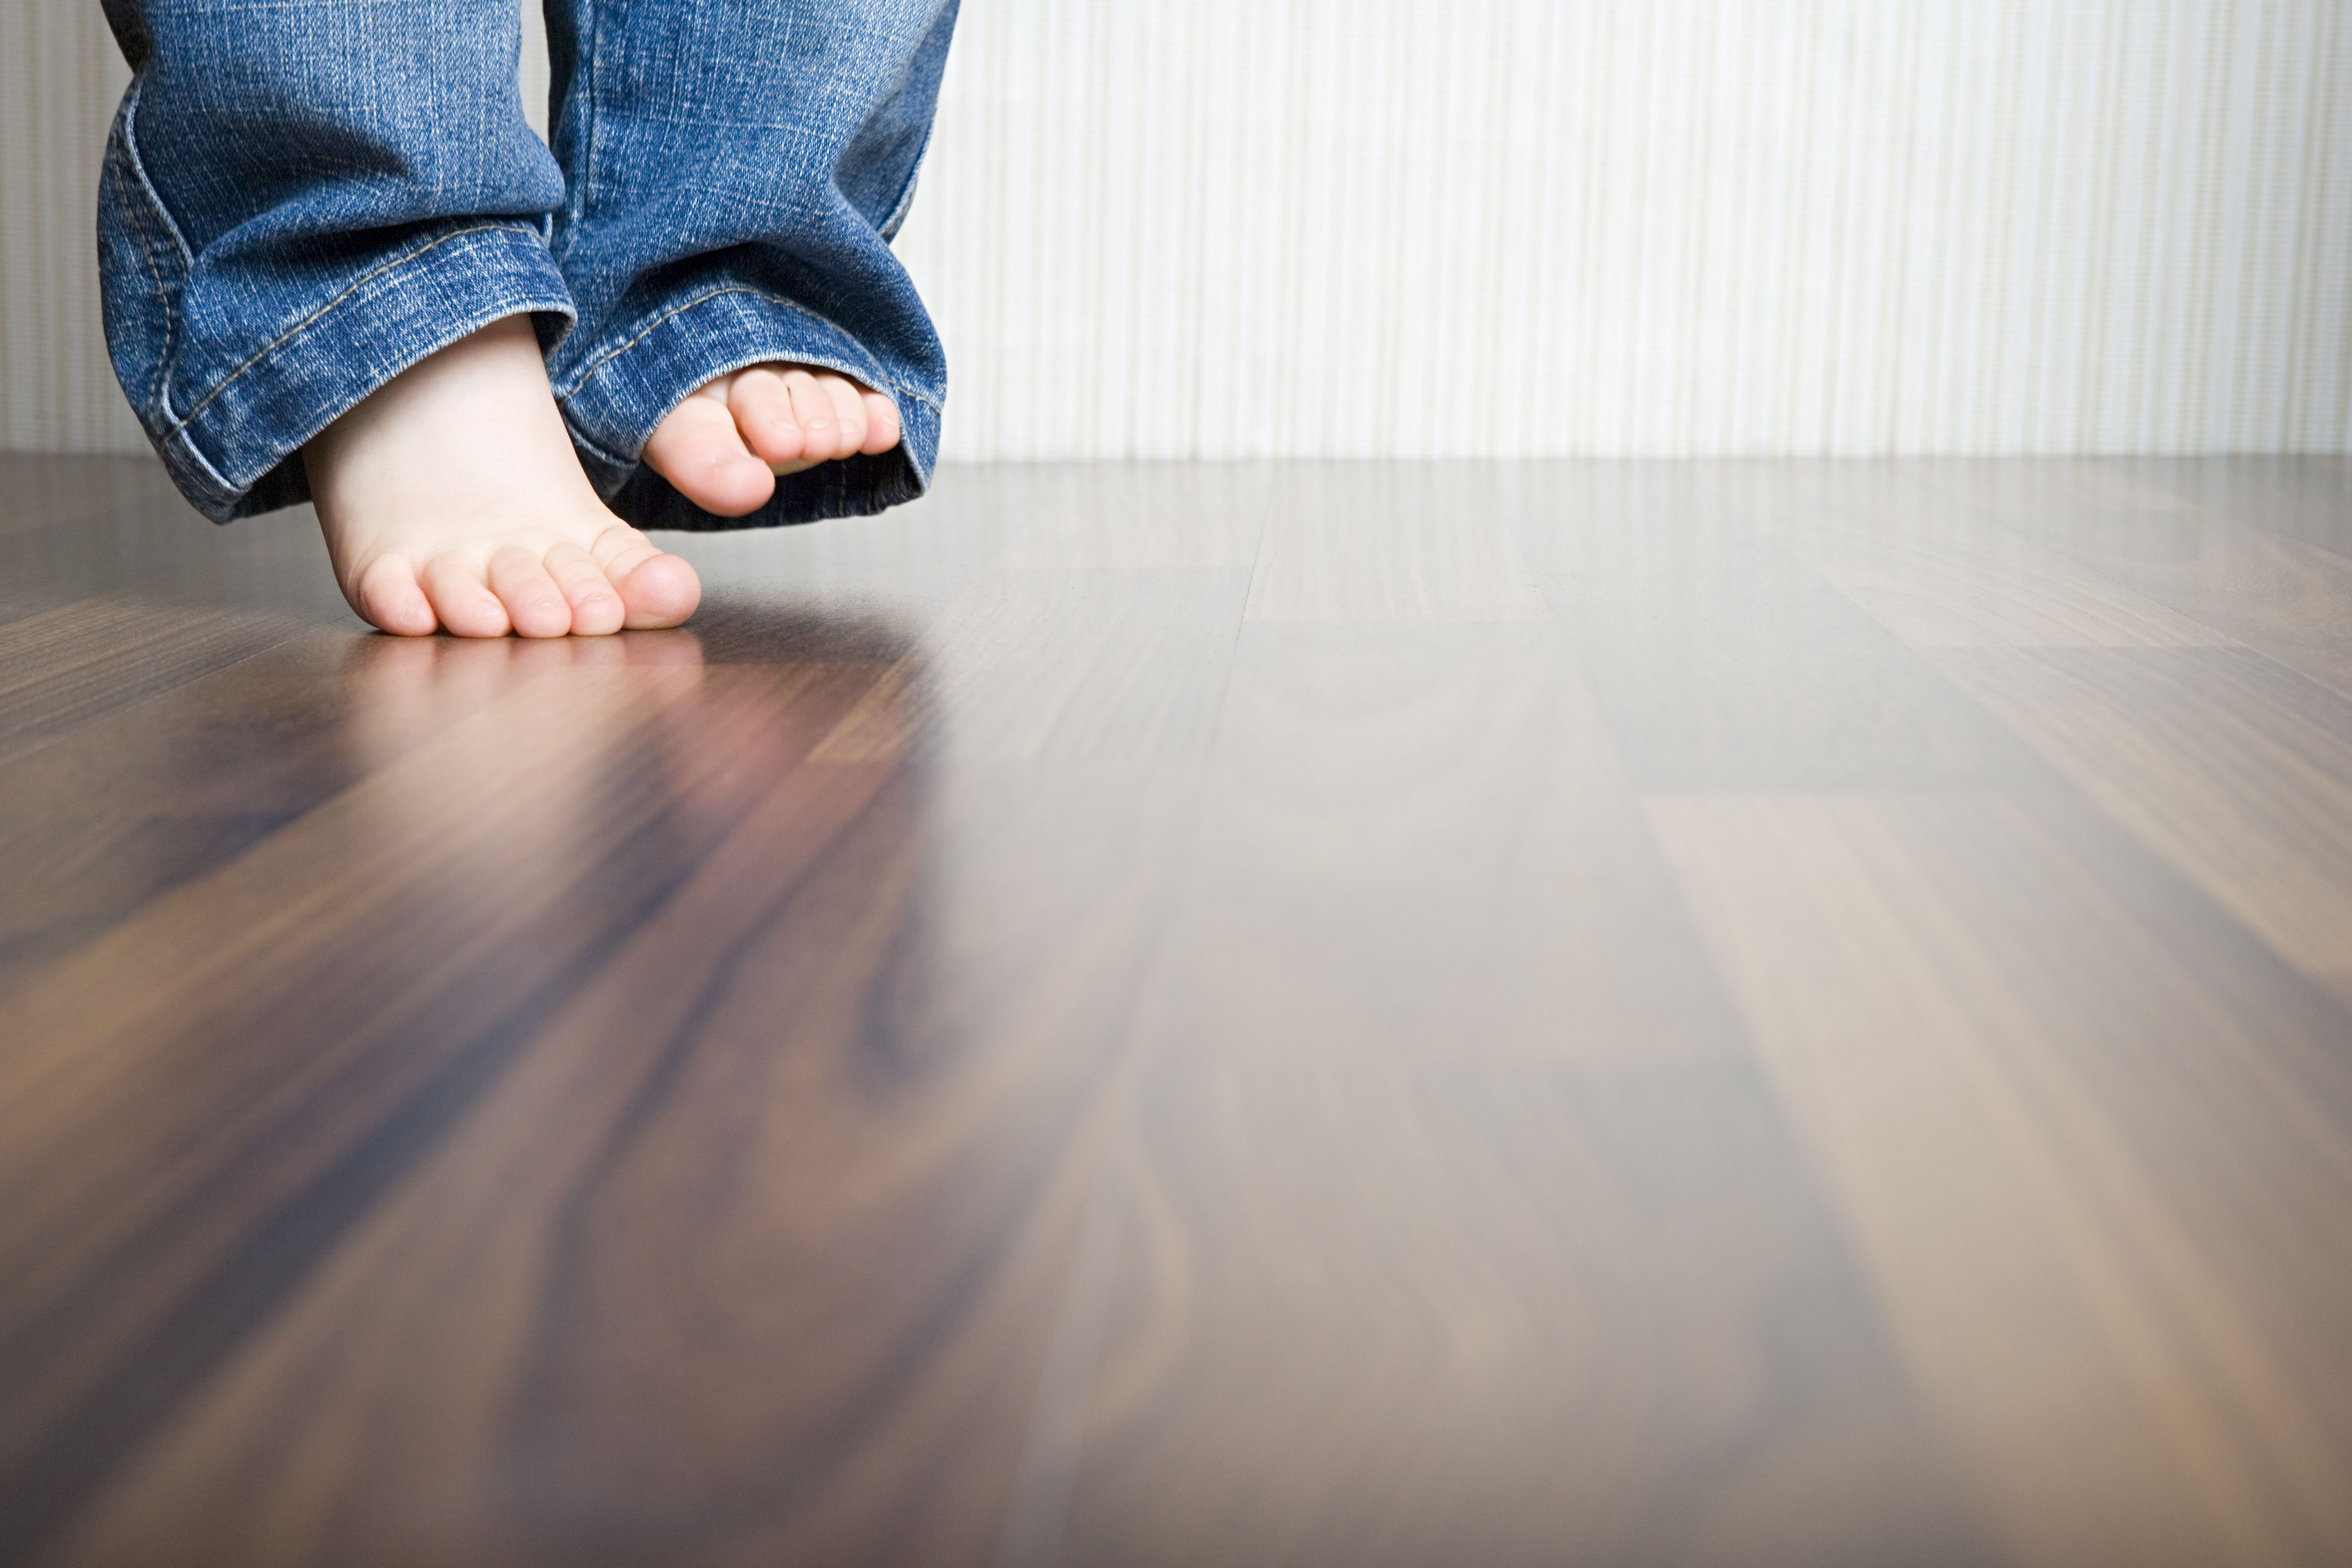 rainbow hardwood flooring reviews of how to clean hardwood floors best way to clean wood flooring within 1512149908 gettyimages 75403973